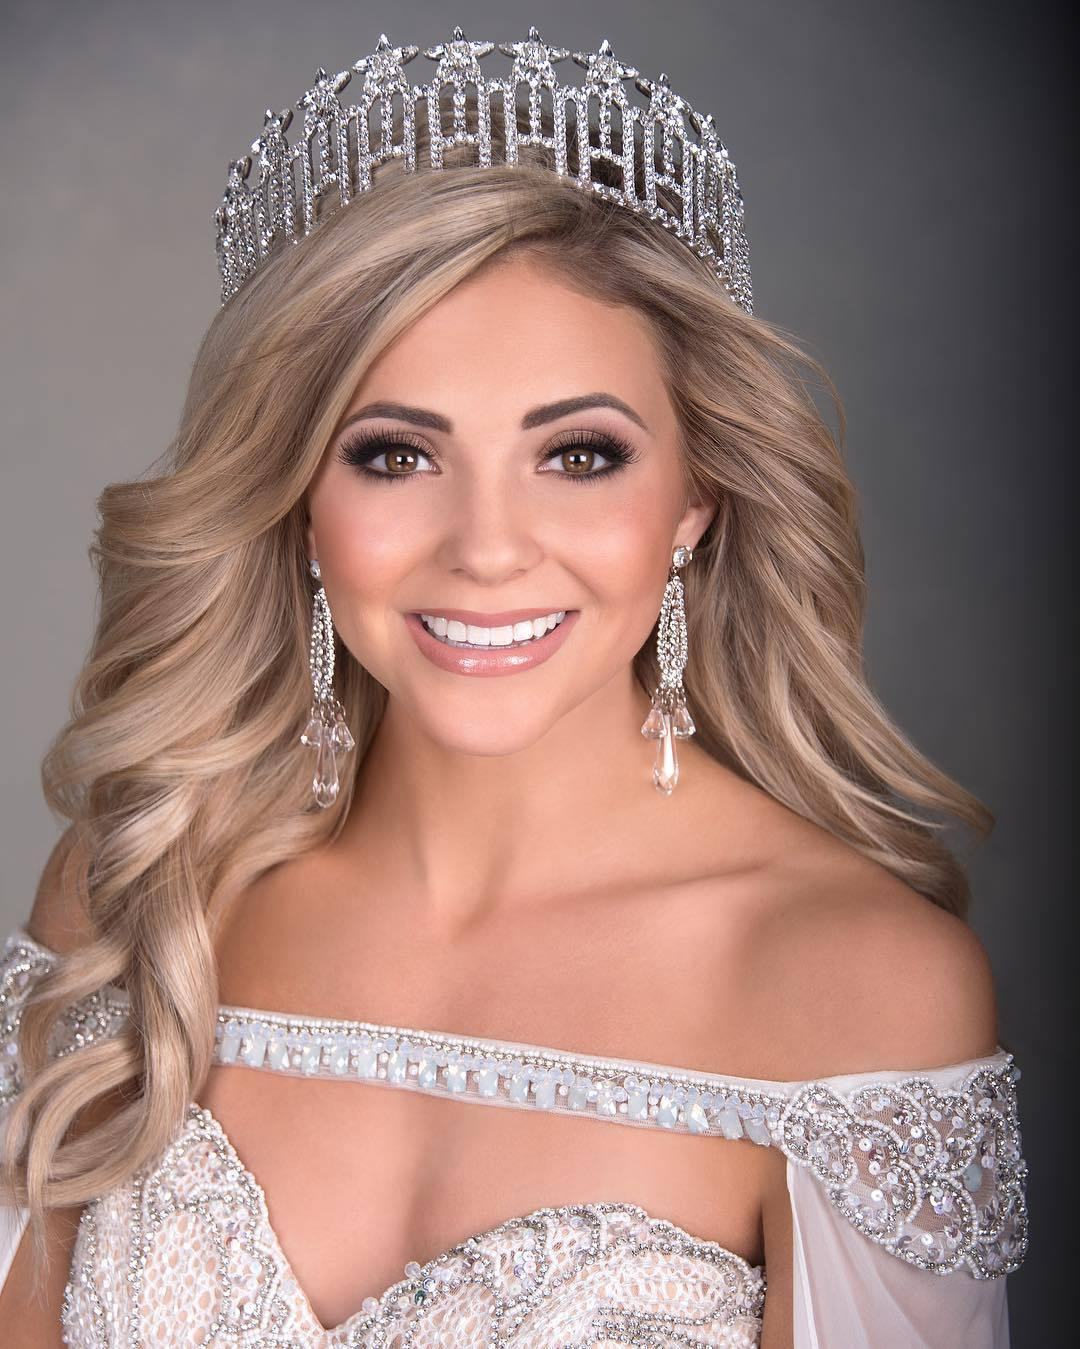 tate fritchley, miss indiana 2019. 43105693_328792254590189_1600298694297081030_n